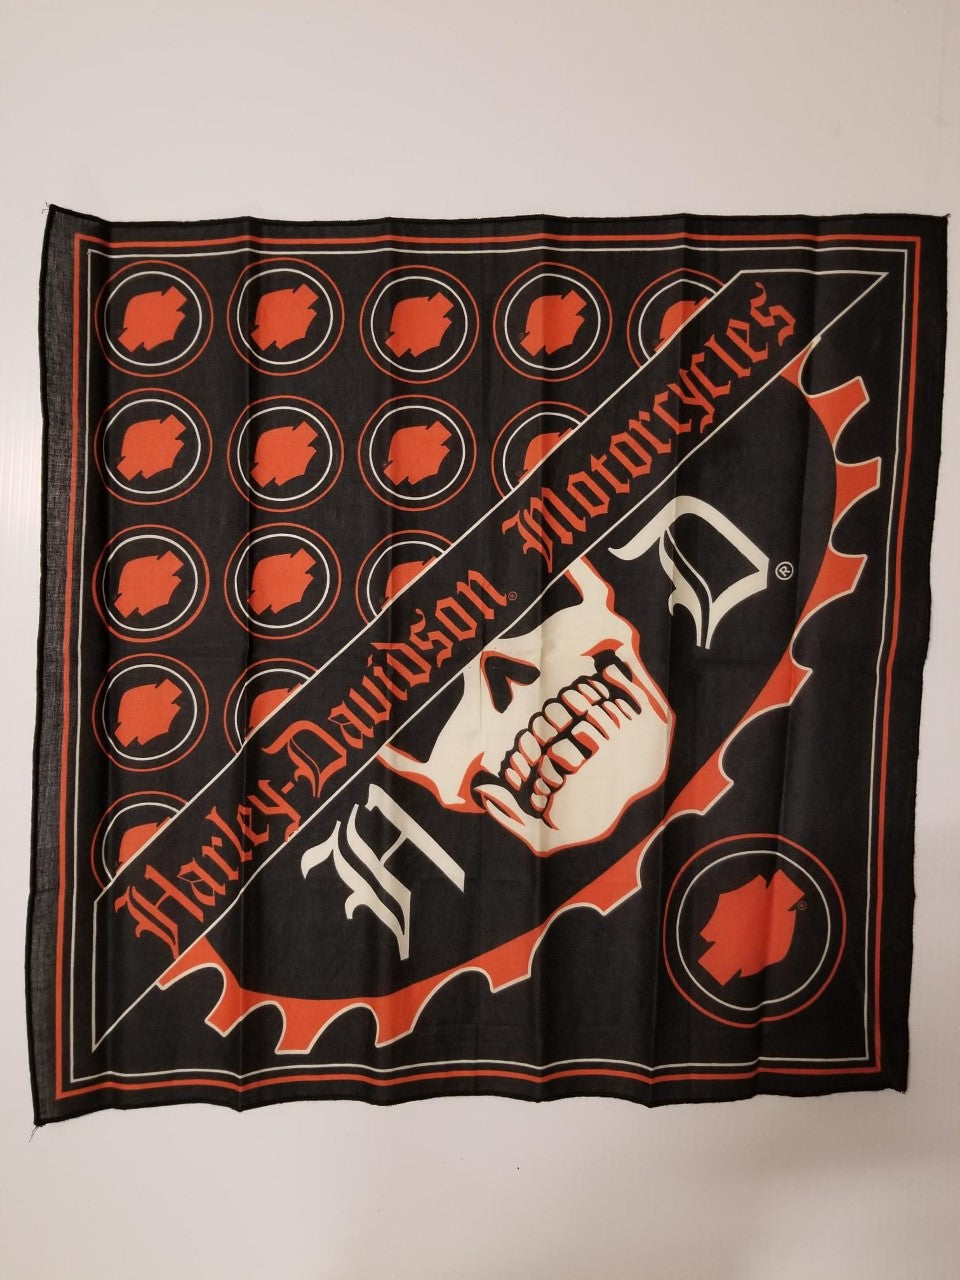 Harley-Davidson bandana feb del/men's black